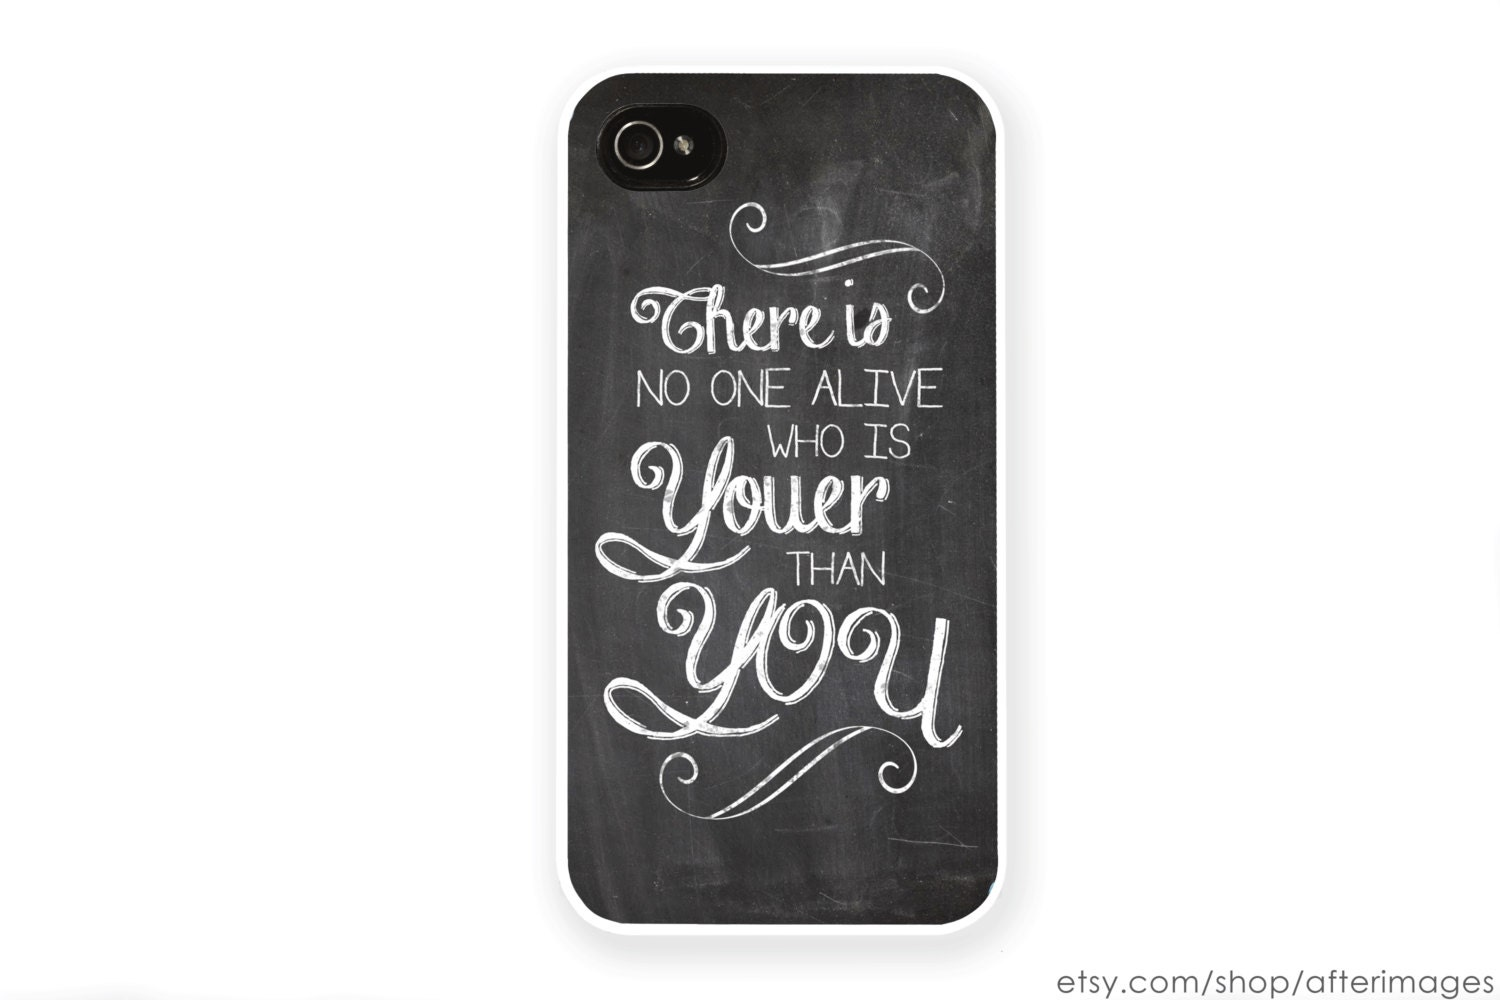 iPhone disney phone cases iphone 5s : Iphone 5 Cases With Quotes Seuss iphone 5 case iphone